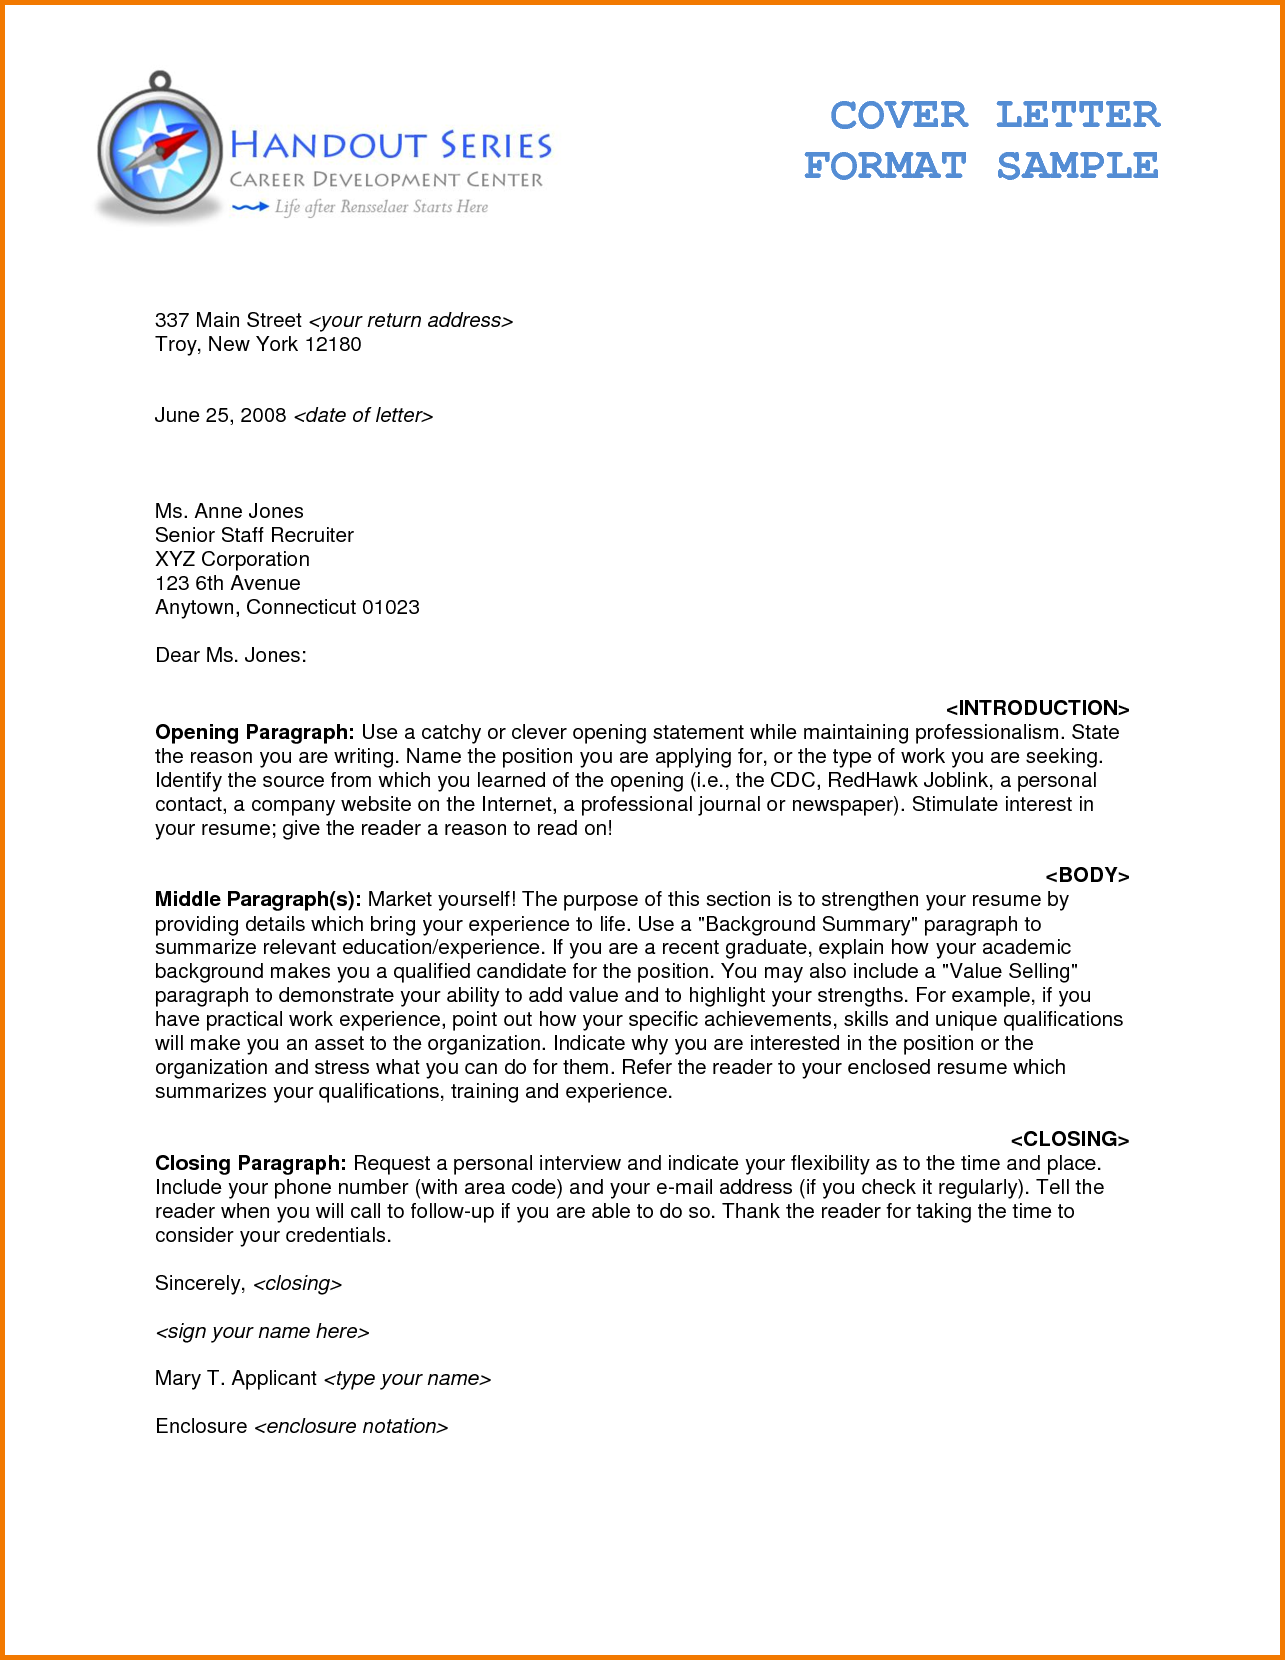 Formal letter format writing cbse class sample how write business formal letter format writing cbse class sample how write business official spiritdancerdesigns Images